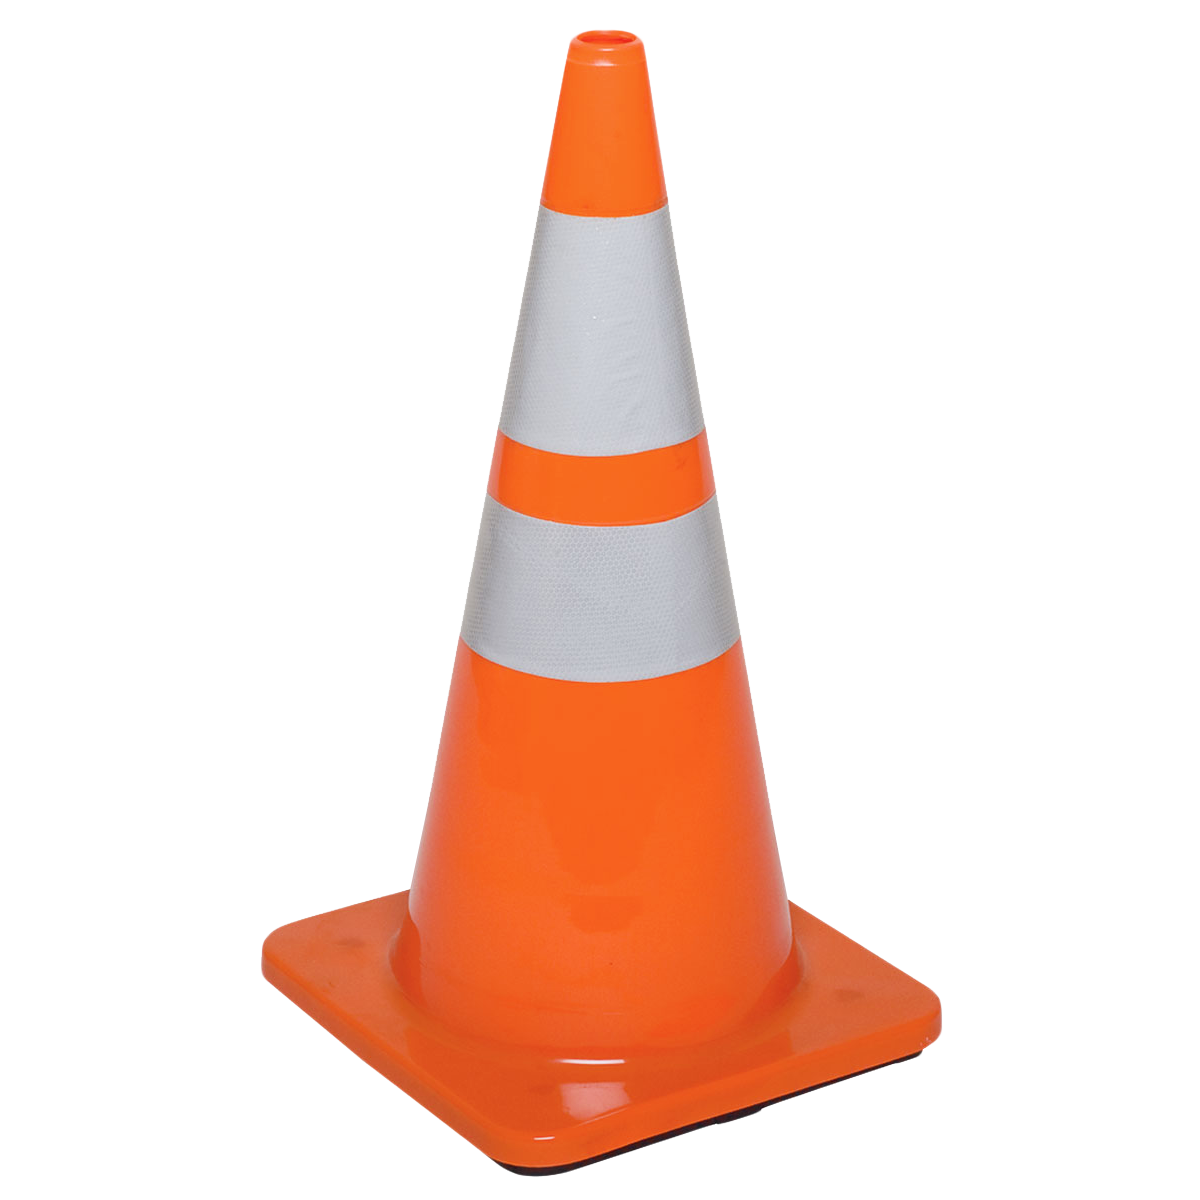 Traffic Cone PNG Transparent Image.